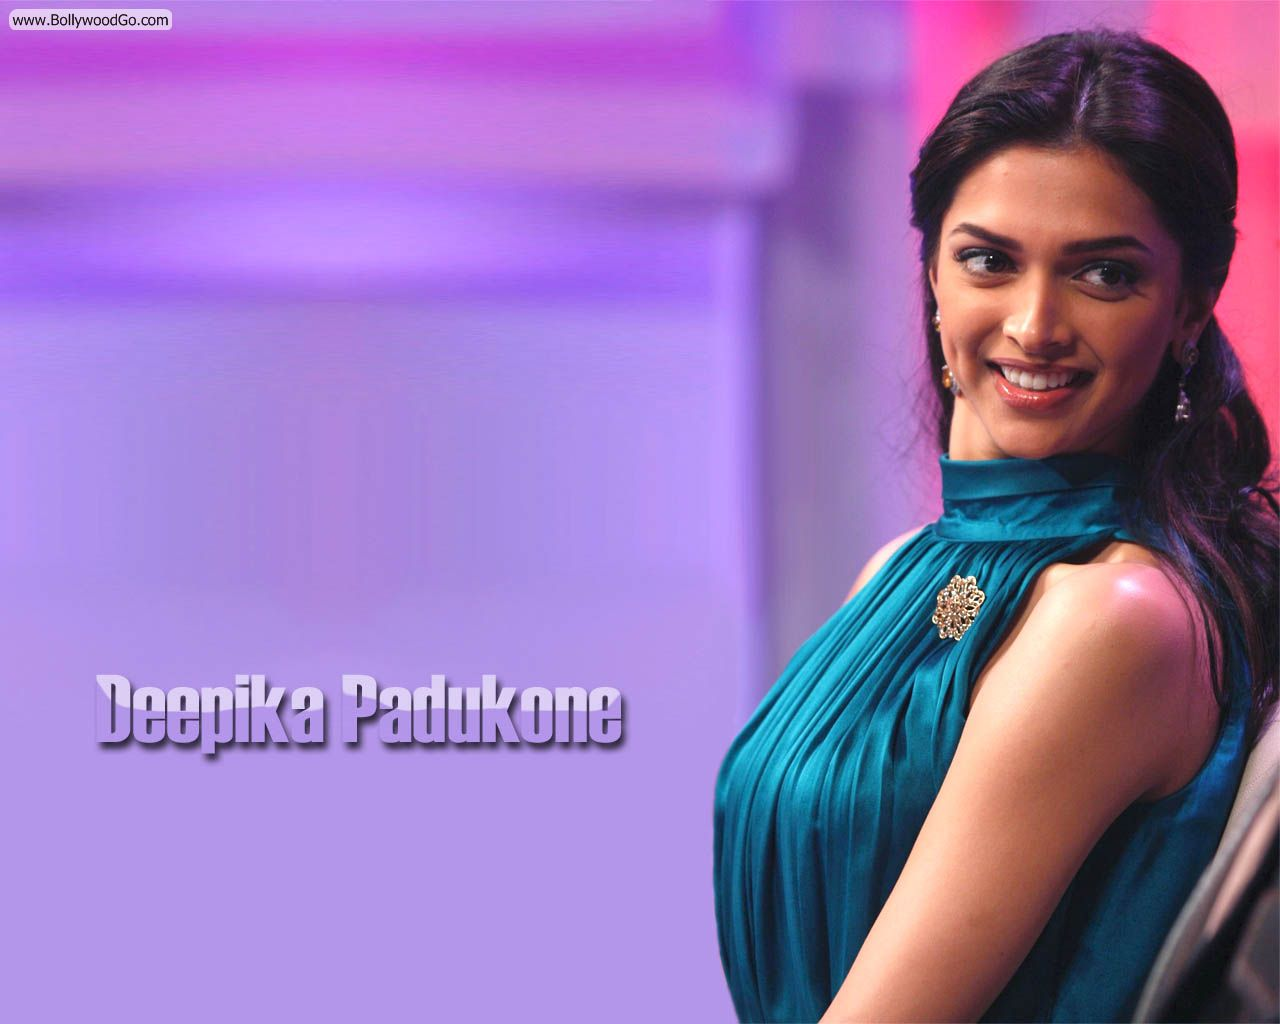 test: 25 Most Beautiful Pictures of Deepika Padukone